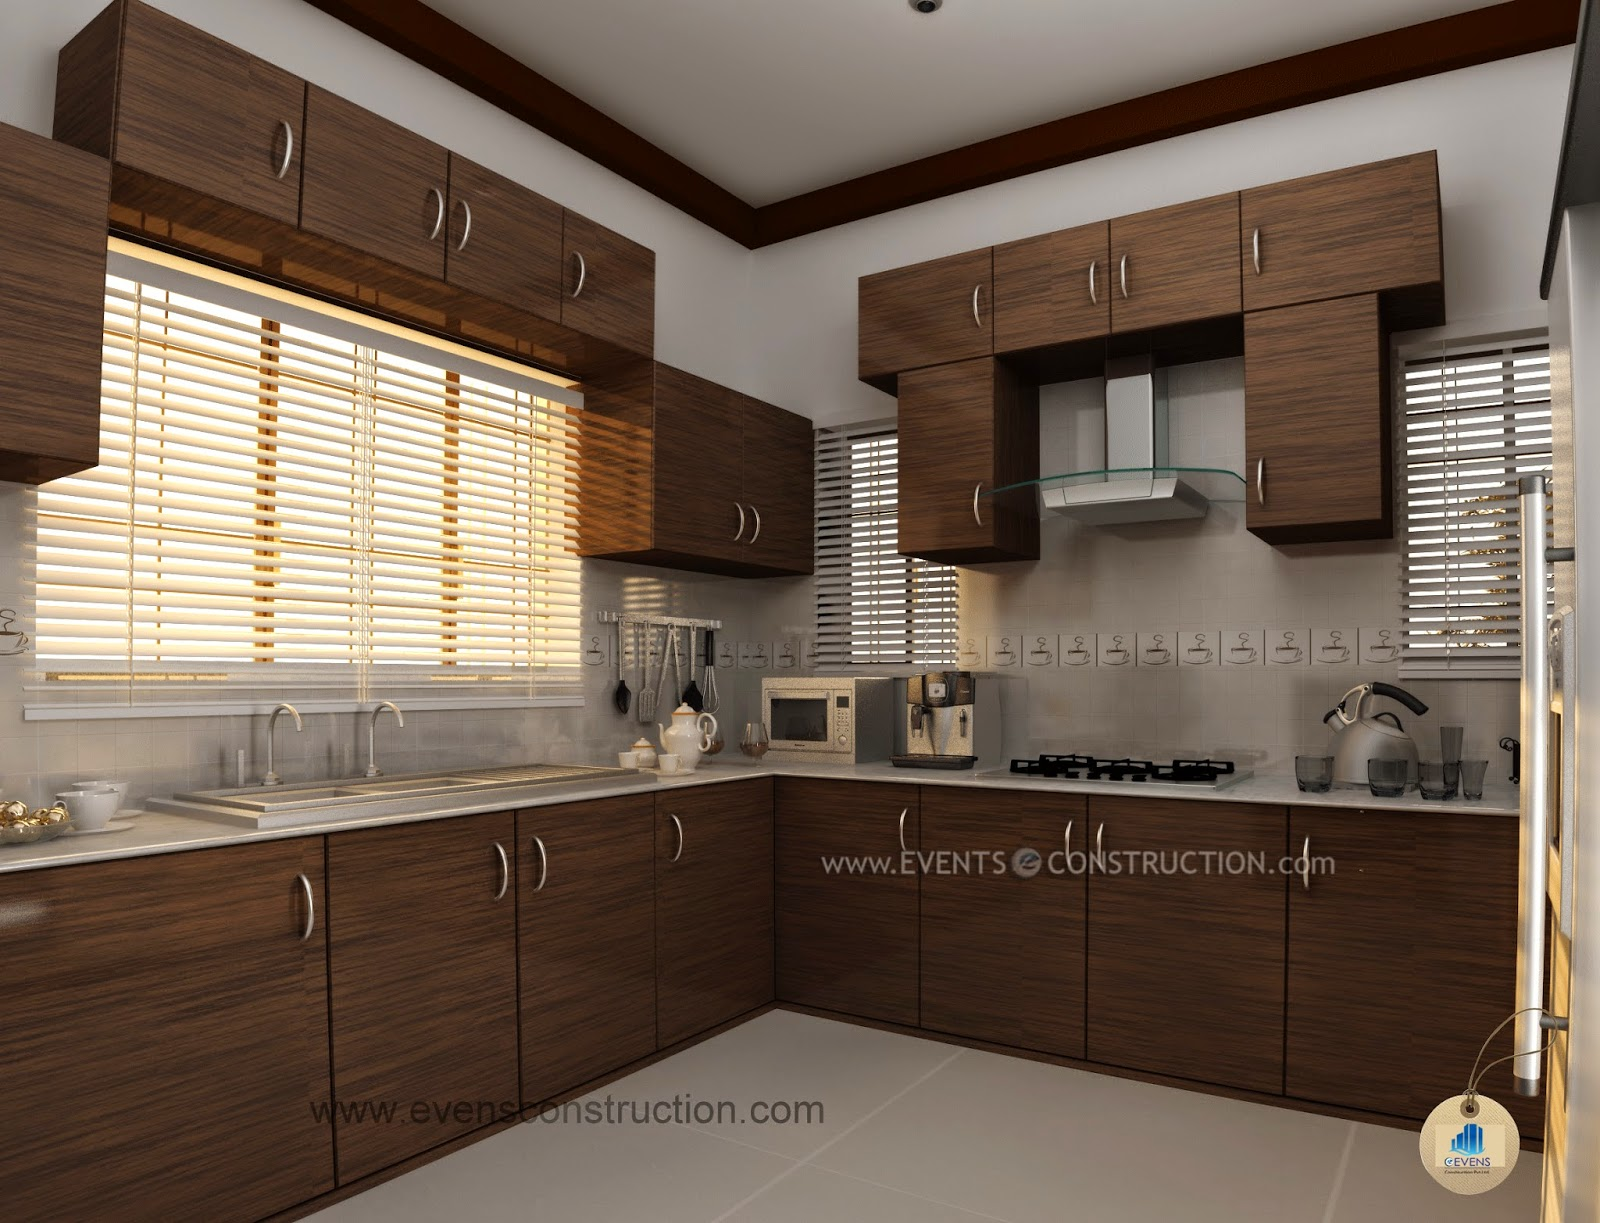 Evens construction pvt ltd modern kerala kitchen for Kerala style kitchen photos